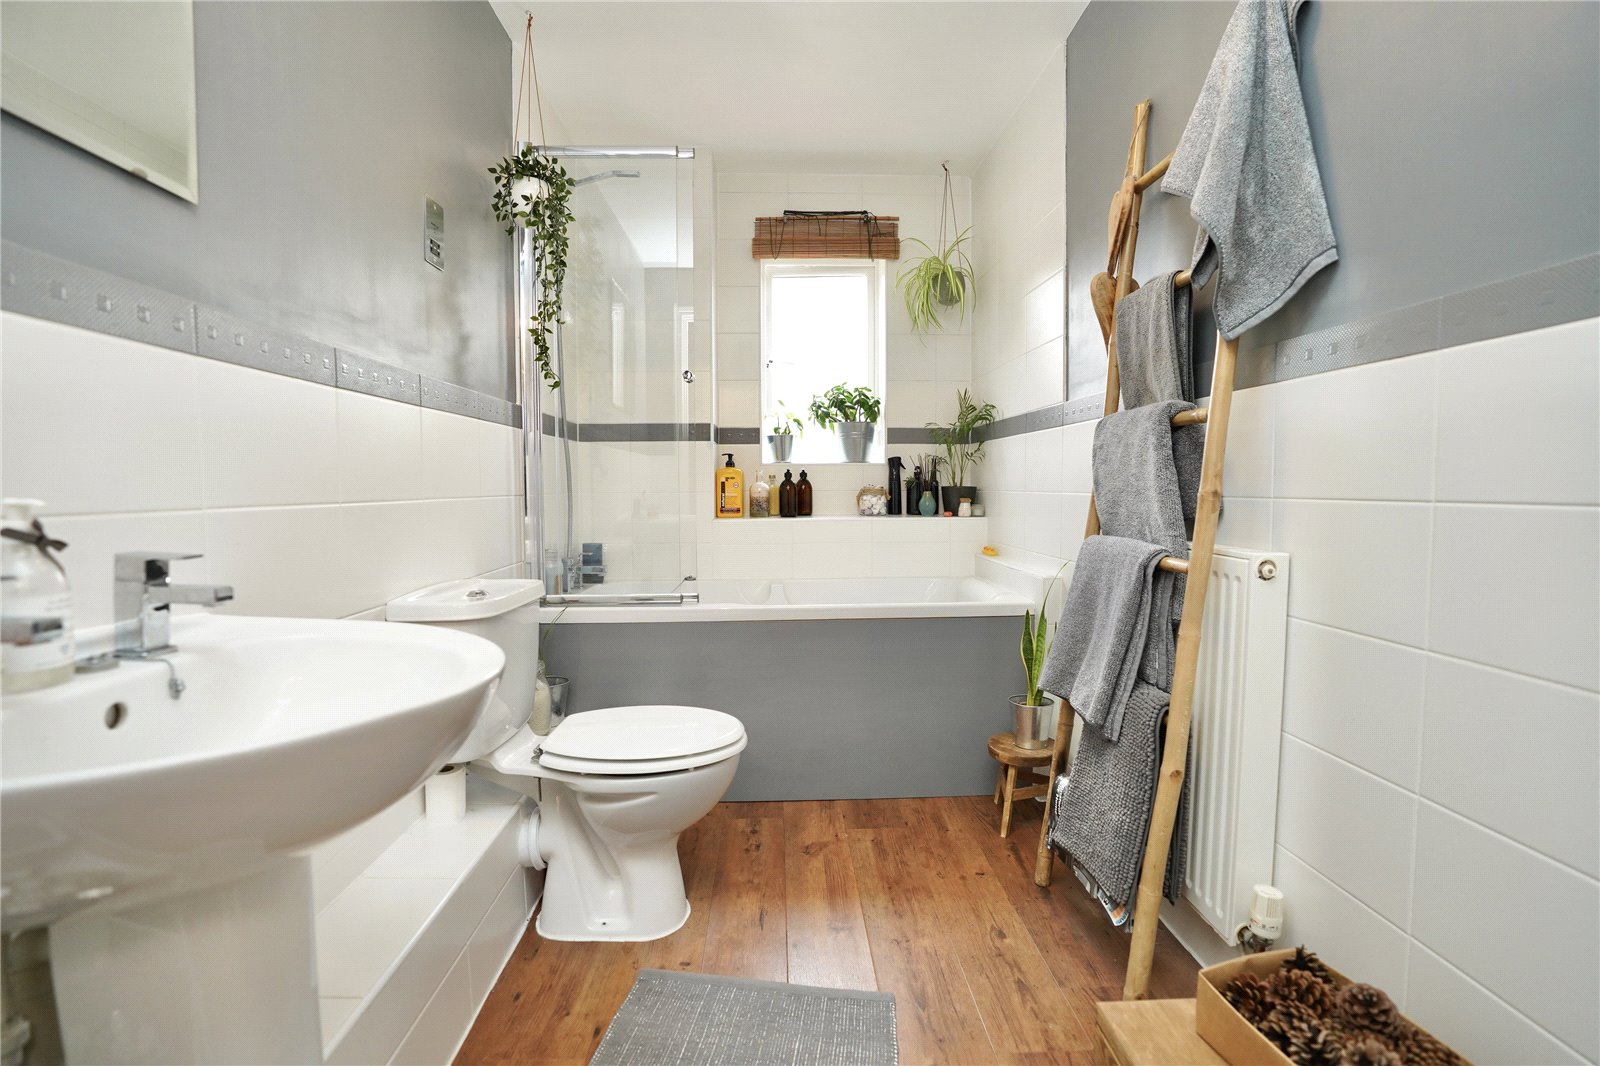 2 bed apartment for sale in St. Ives, PE27 5QL  - Property Image 10